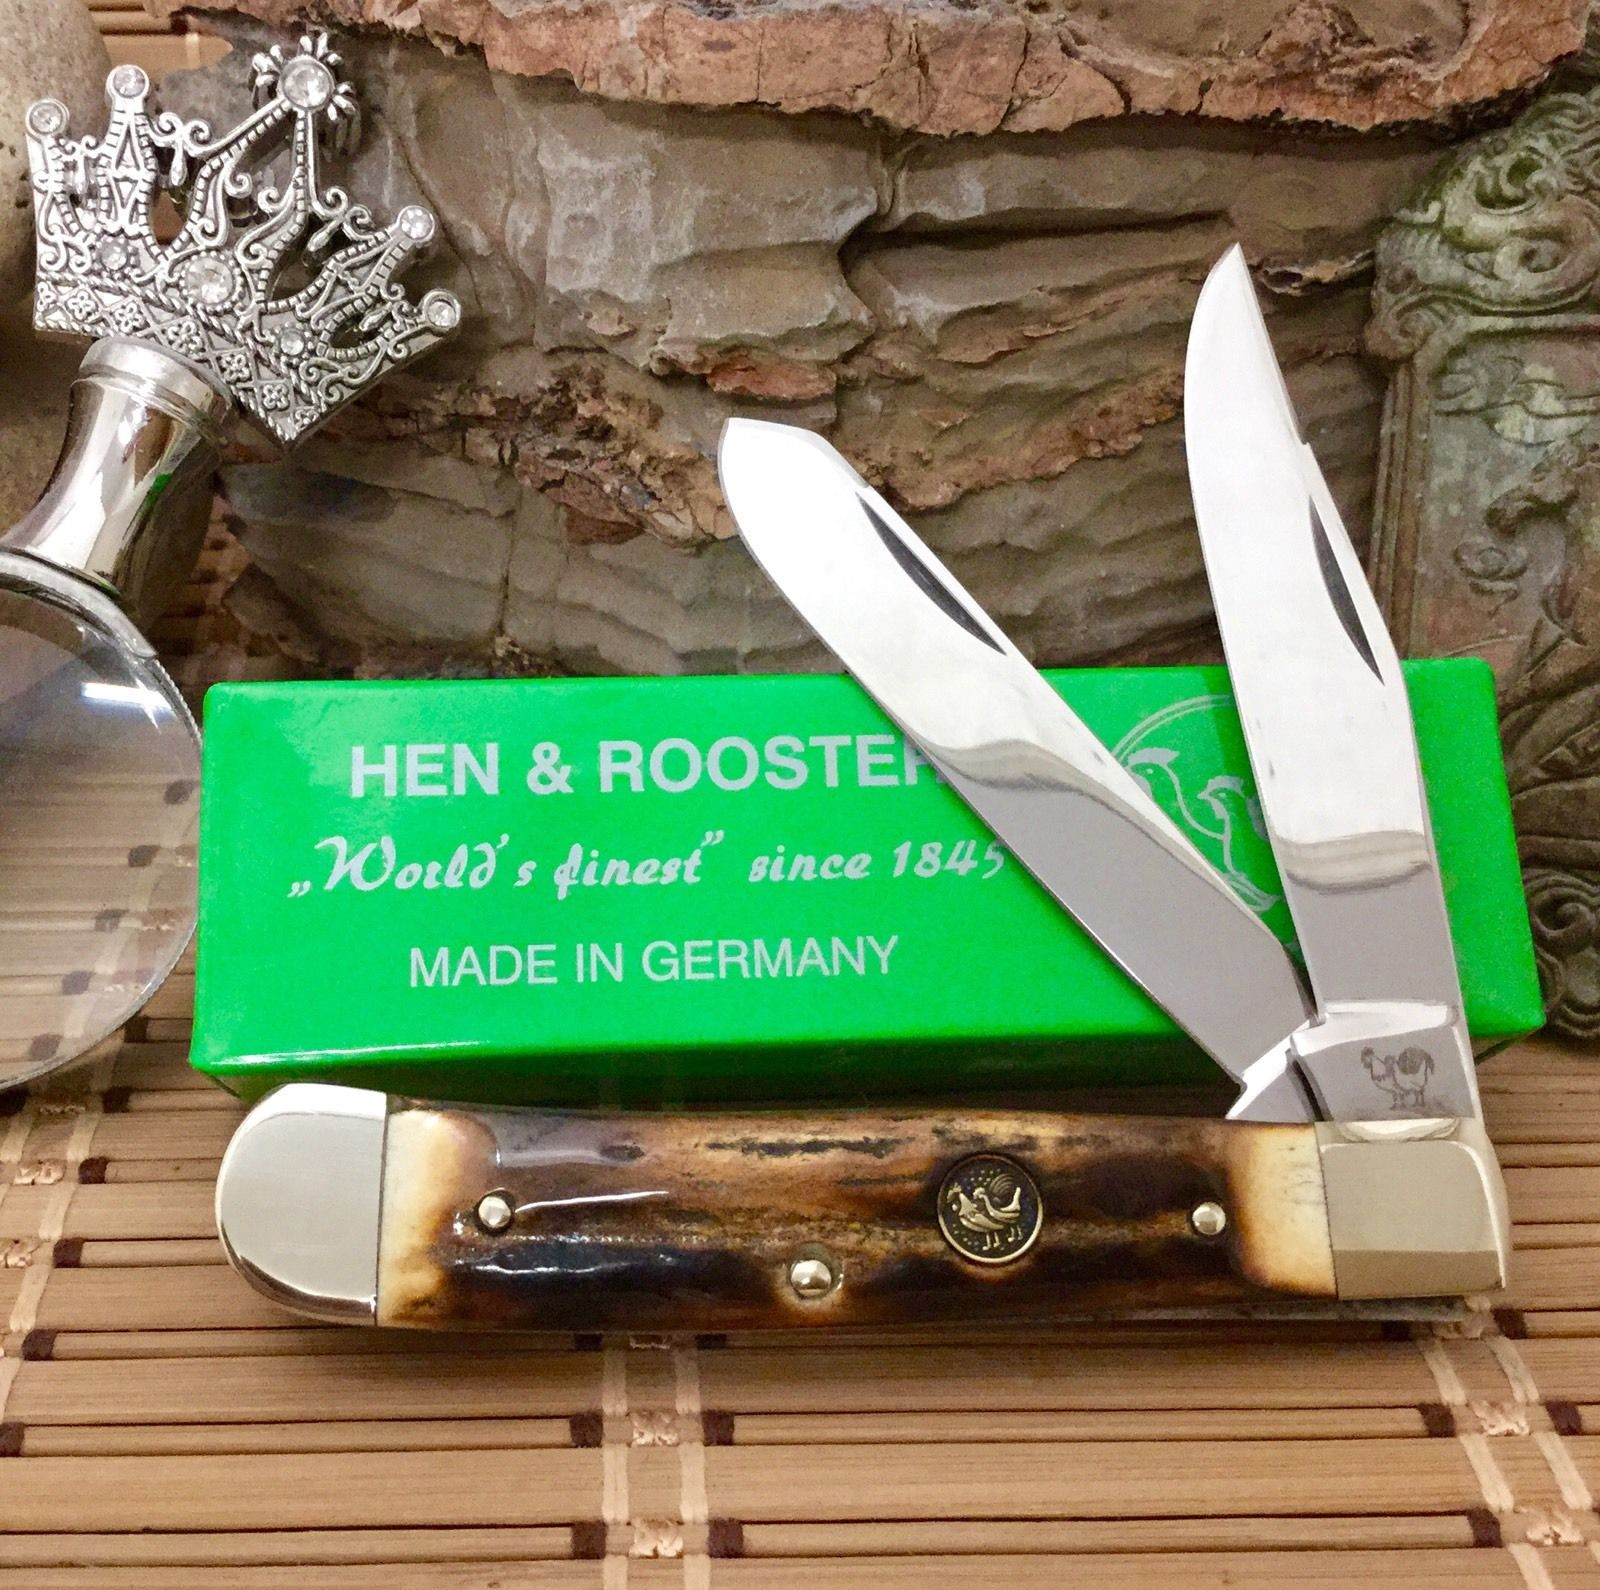 Dating hen and rooster knives